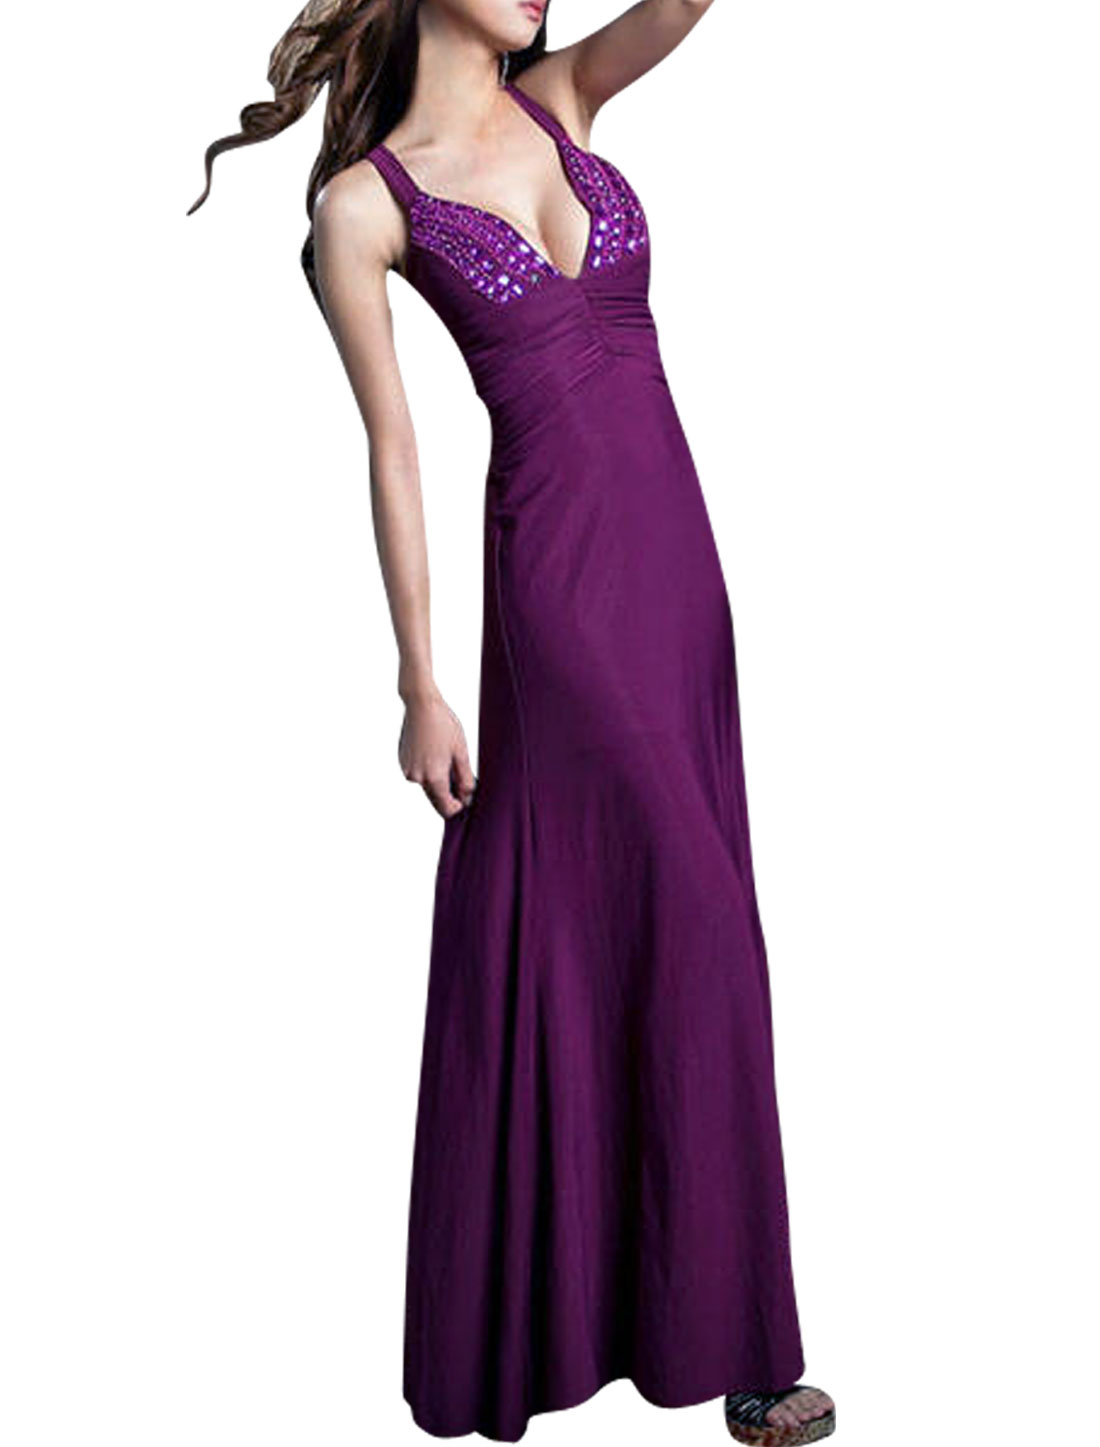 Women Beads Decor Deep V Neck Cut Out Back Maxi Dress Purple S